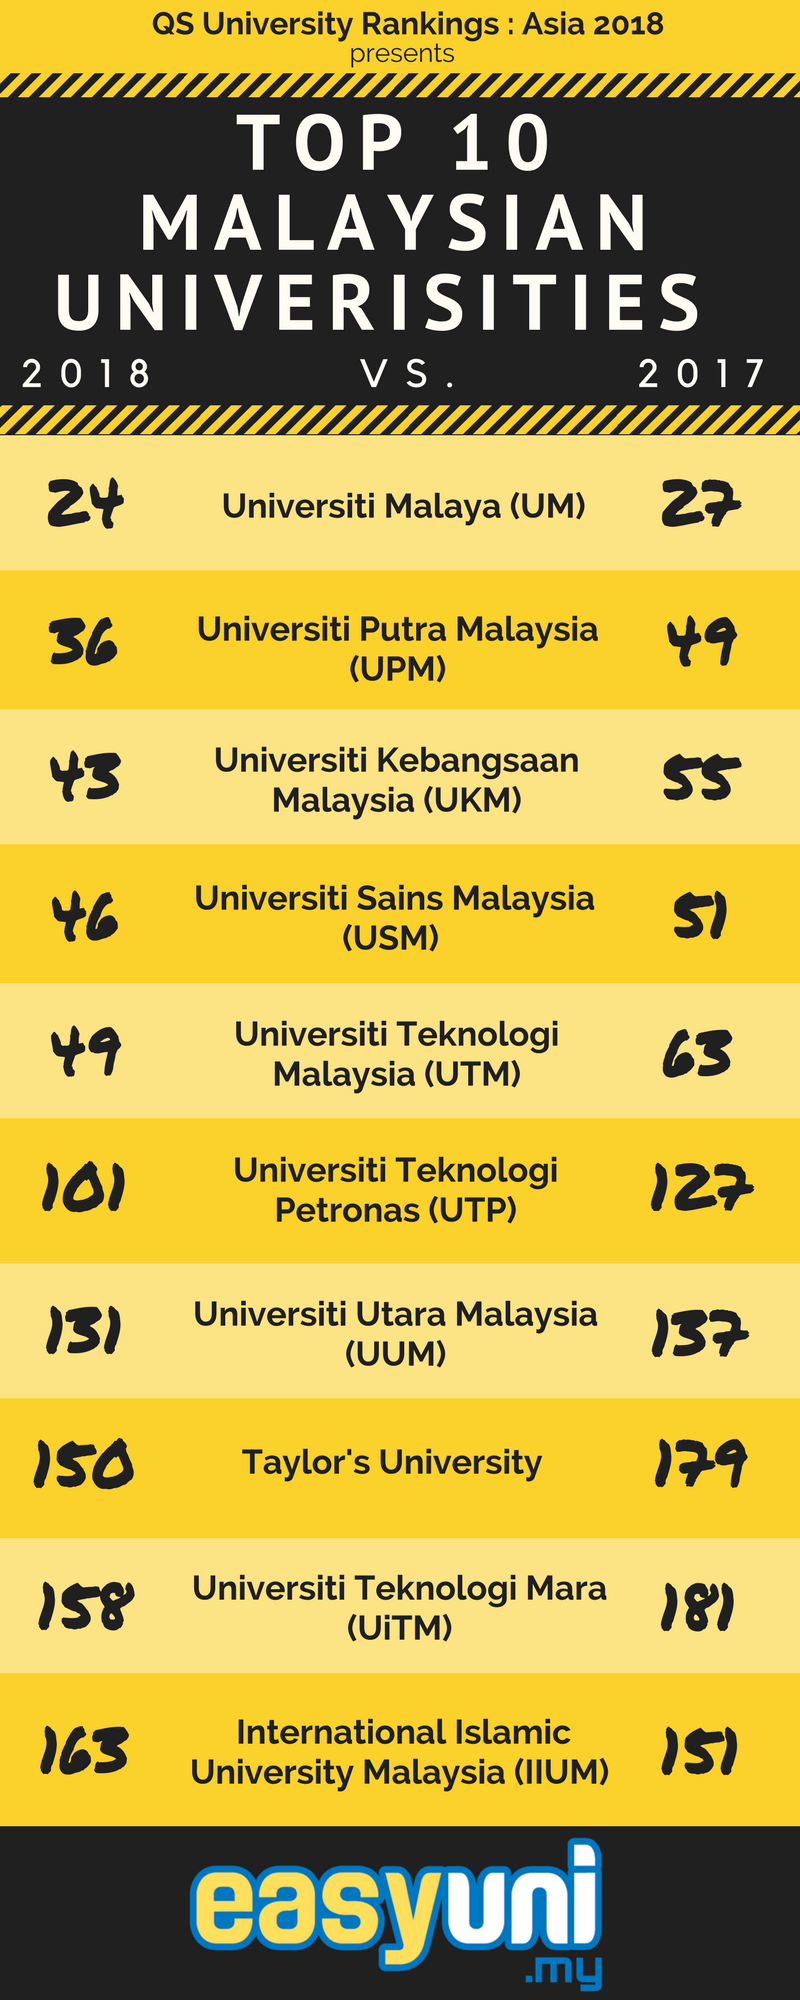 To view the whole QS Asia University Rankings 2018, click here.